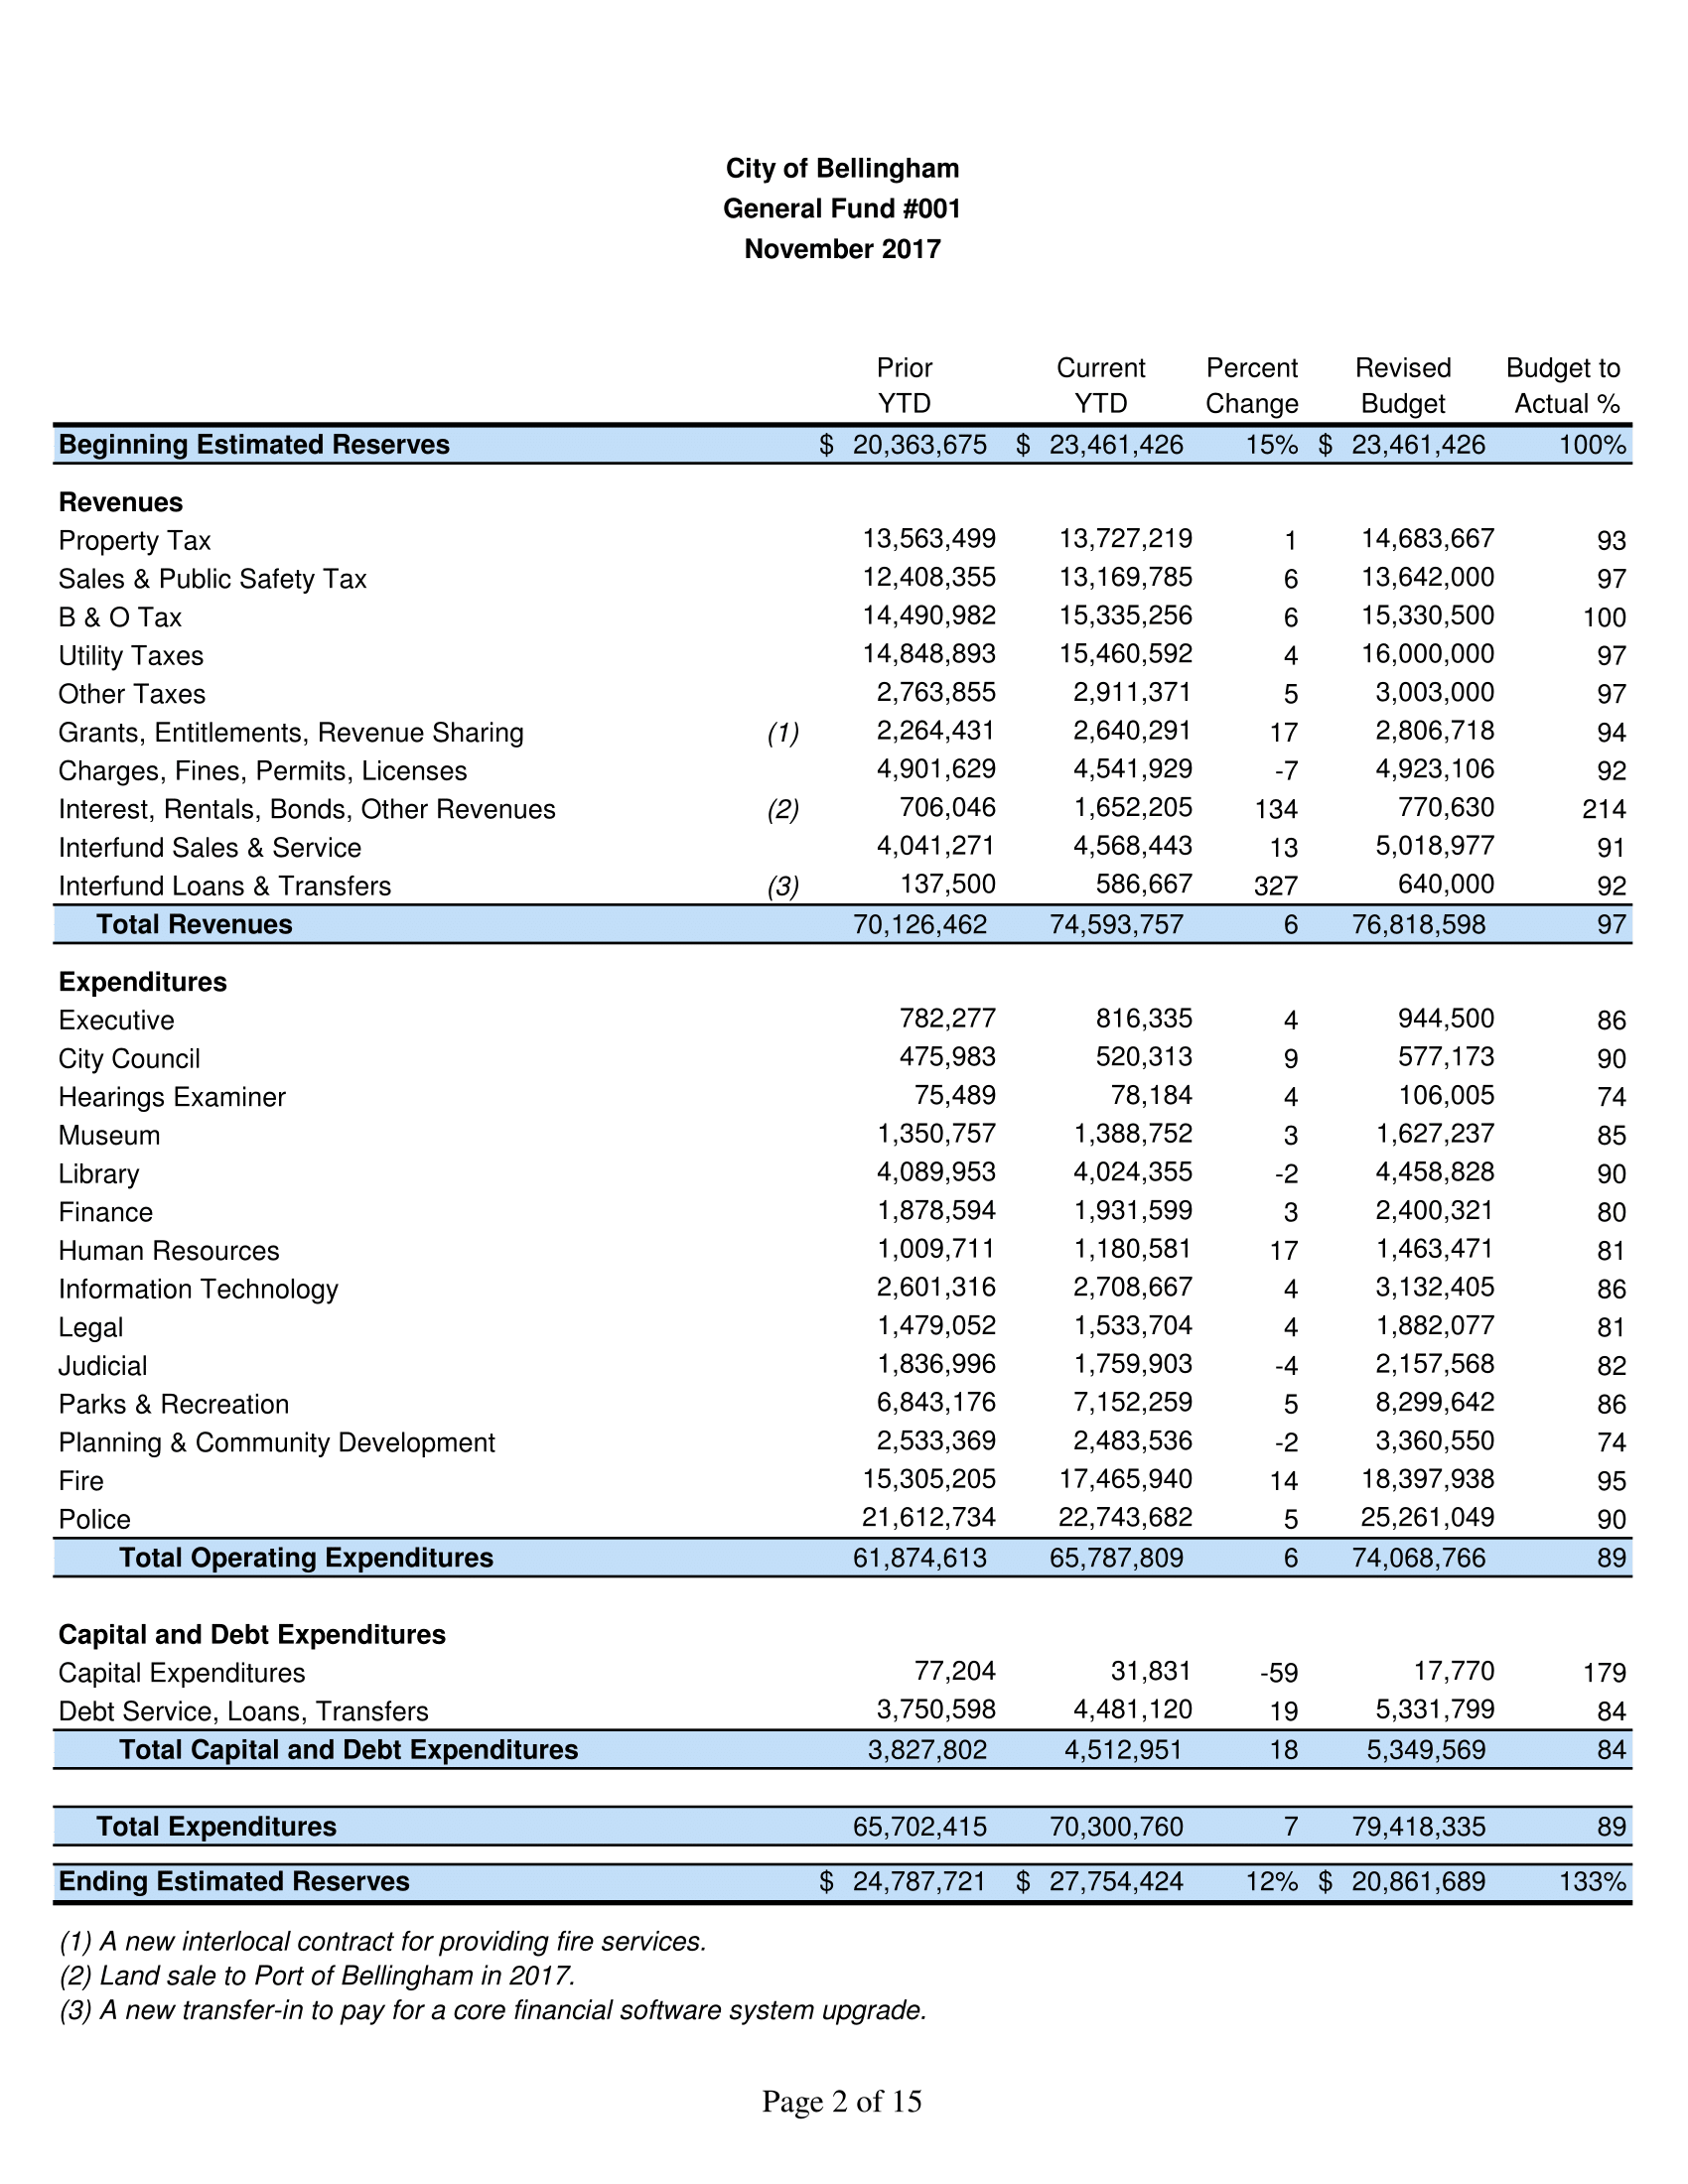 Original Data from the City of Bellingham General Fund